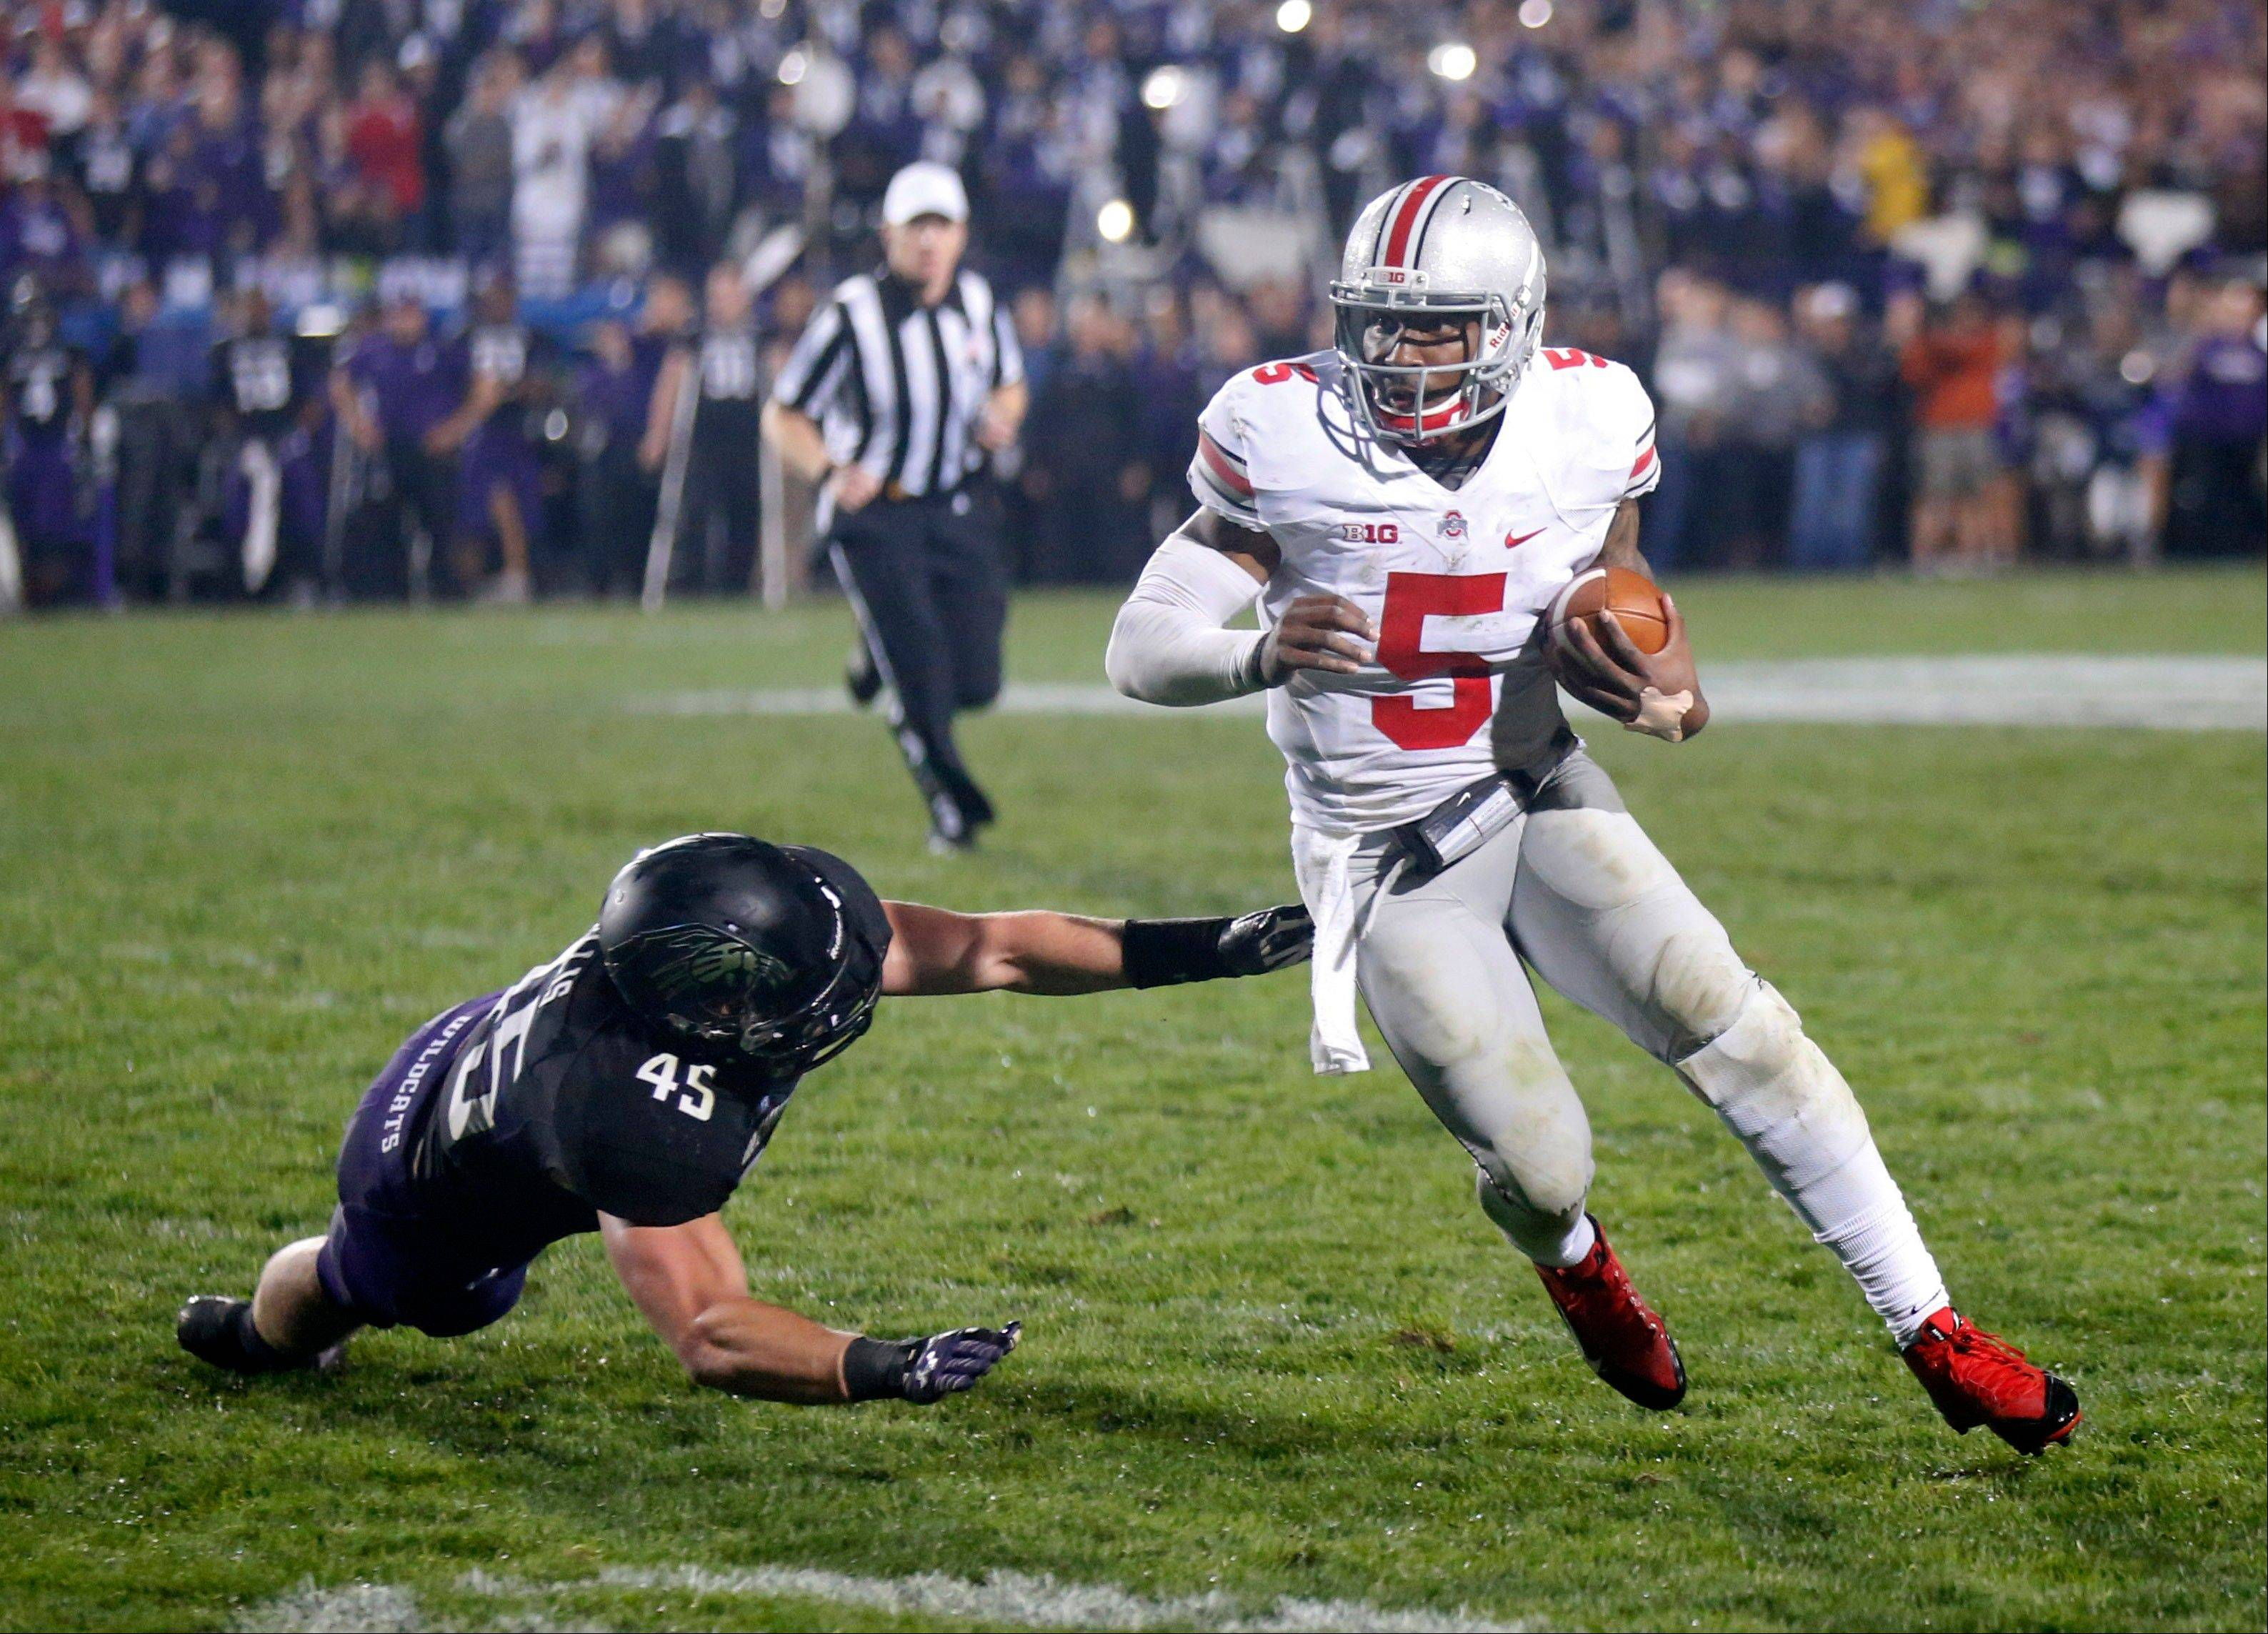 Ohio State quarterback Braxton Miller runs past the outstretched hands of Northwestern linebacker Collin Ellis during the second half of last Saturday�s game in Evanston. The Buckeyes play their next game at home against Iowa on Oct. 19.